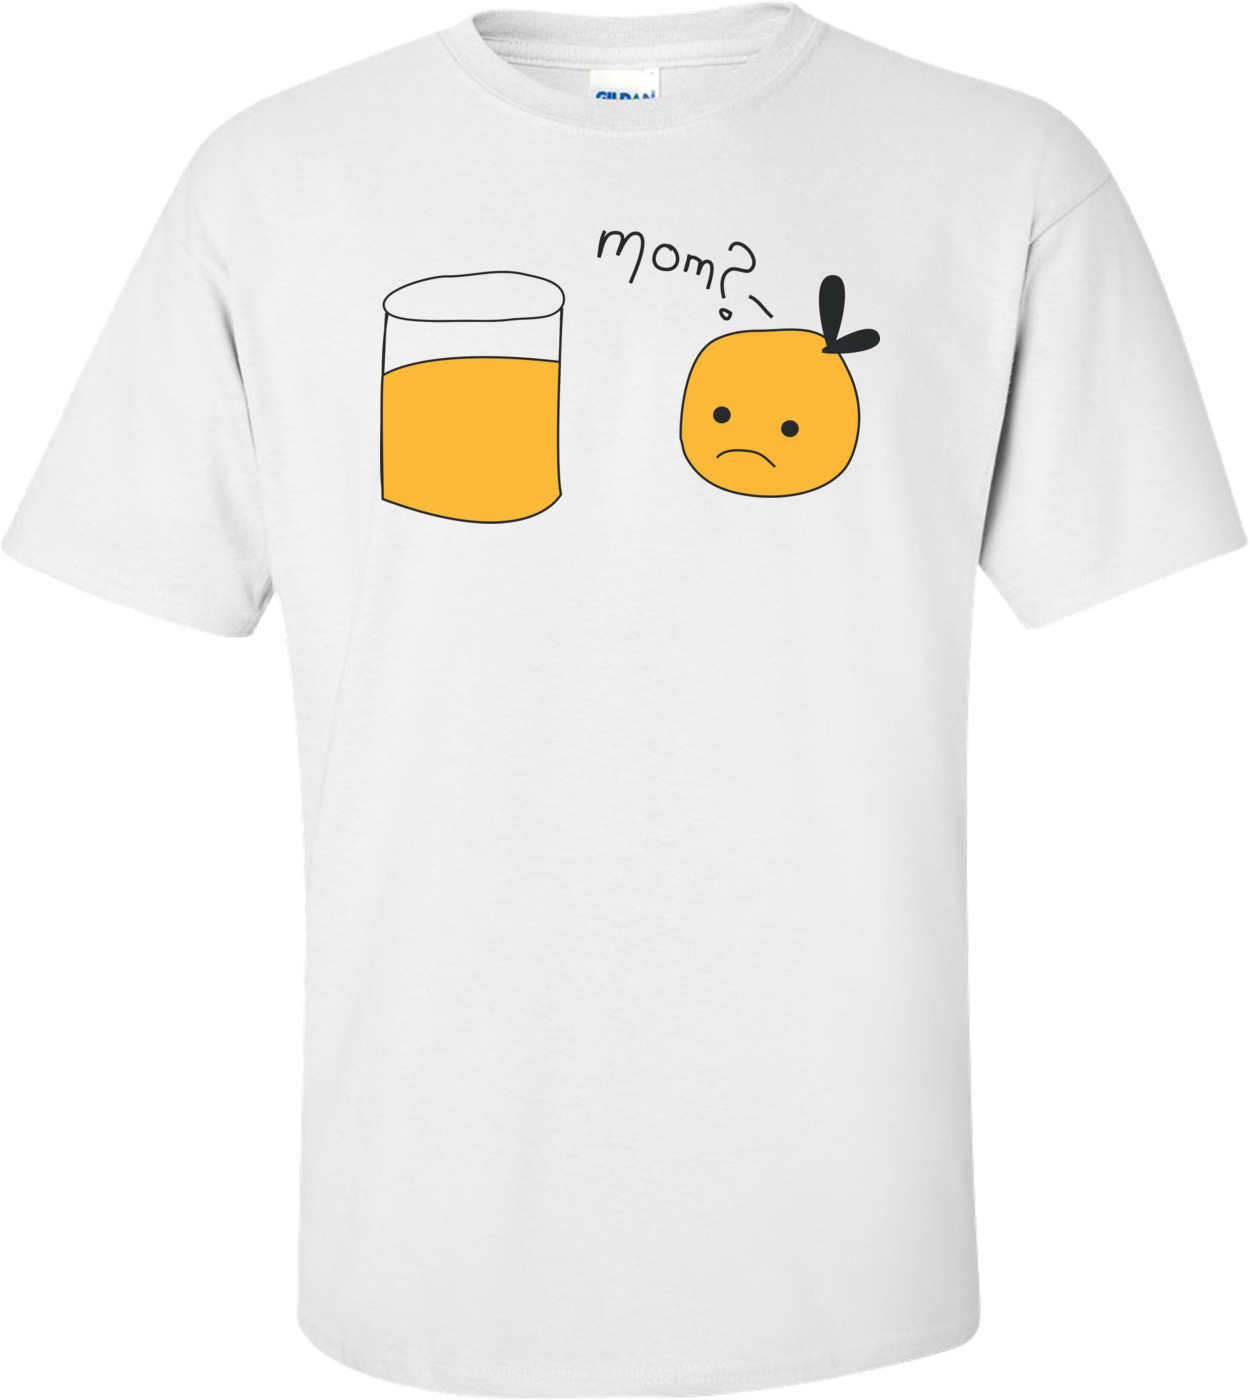 Mom? Orange Juice Funny Shirt